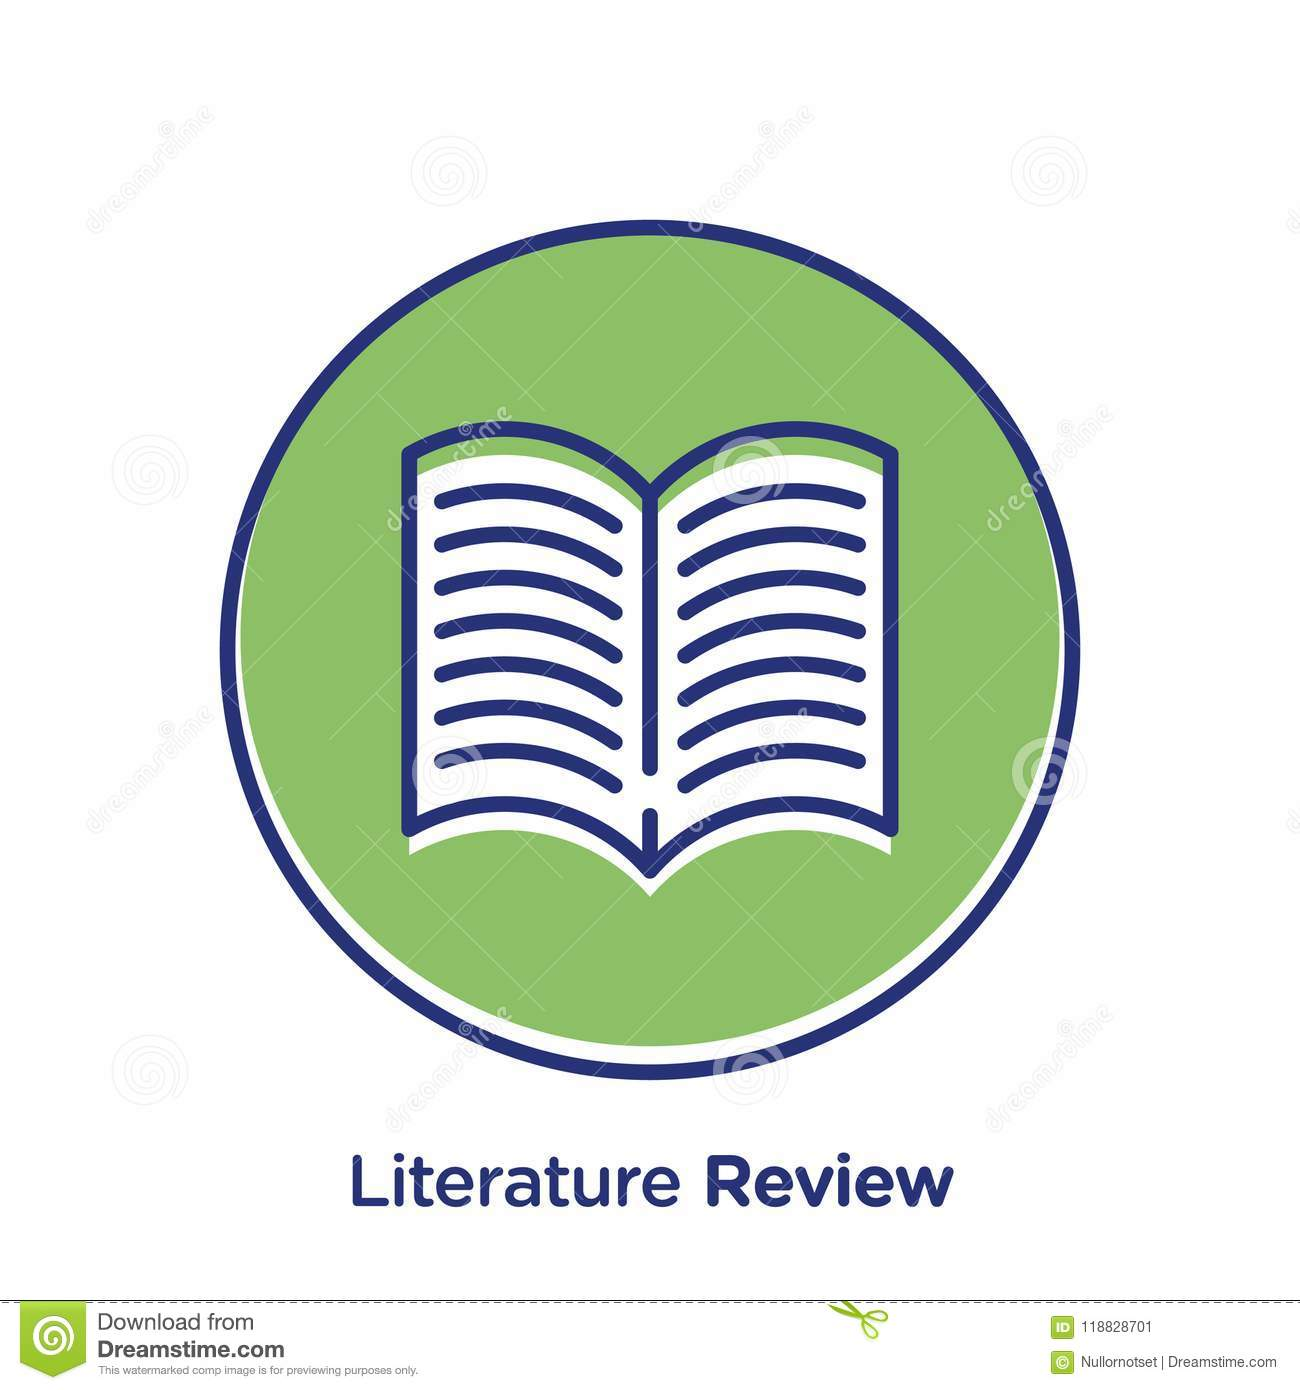 Literature Review Web Icon Stock Vector Illustration Of Knowledge